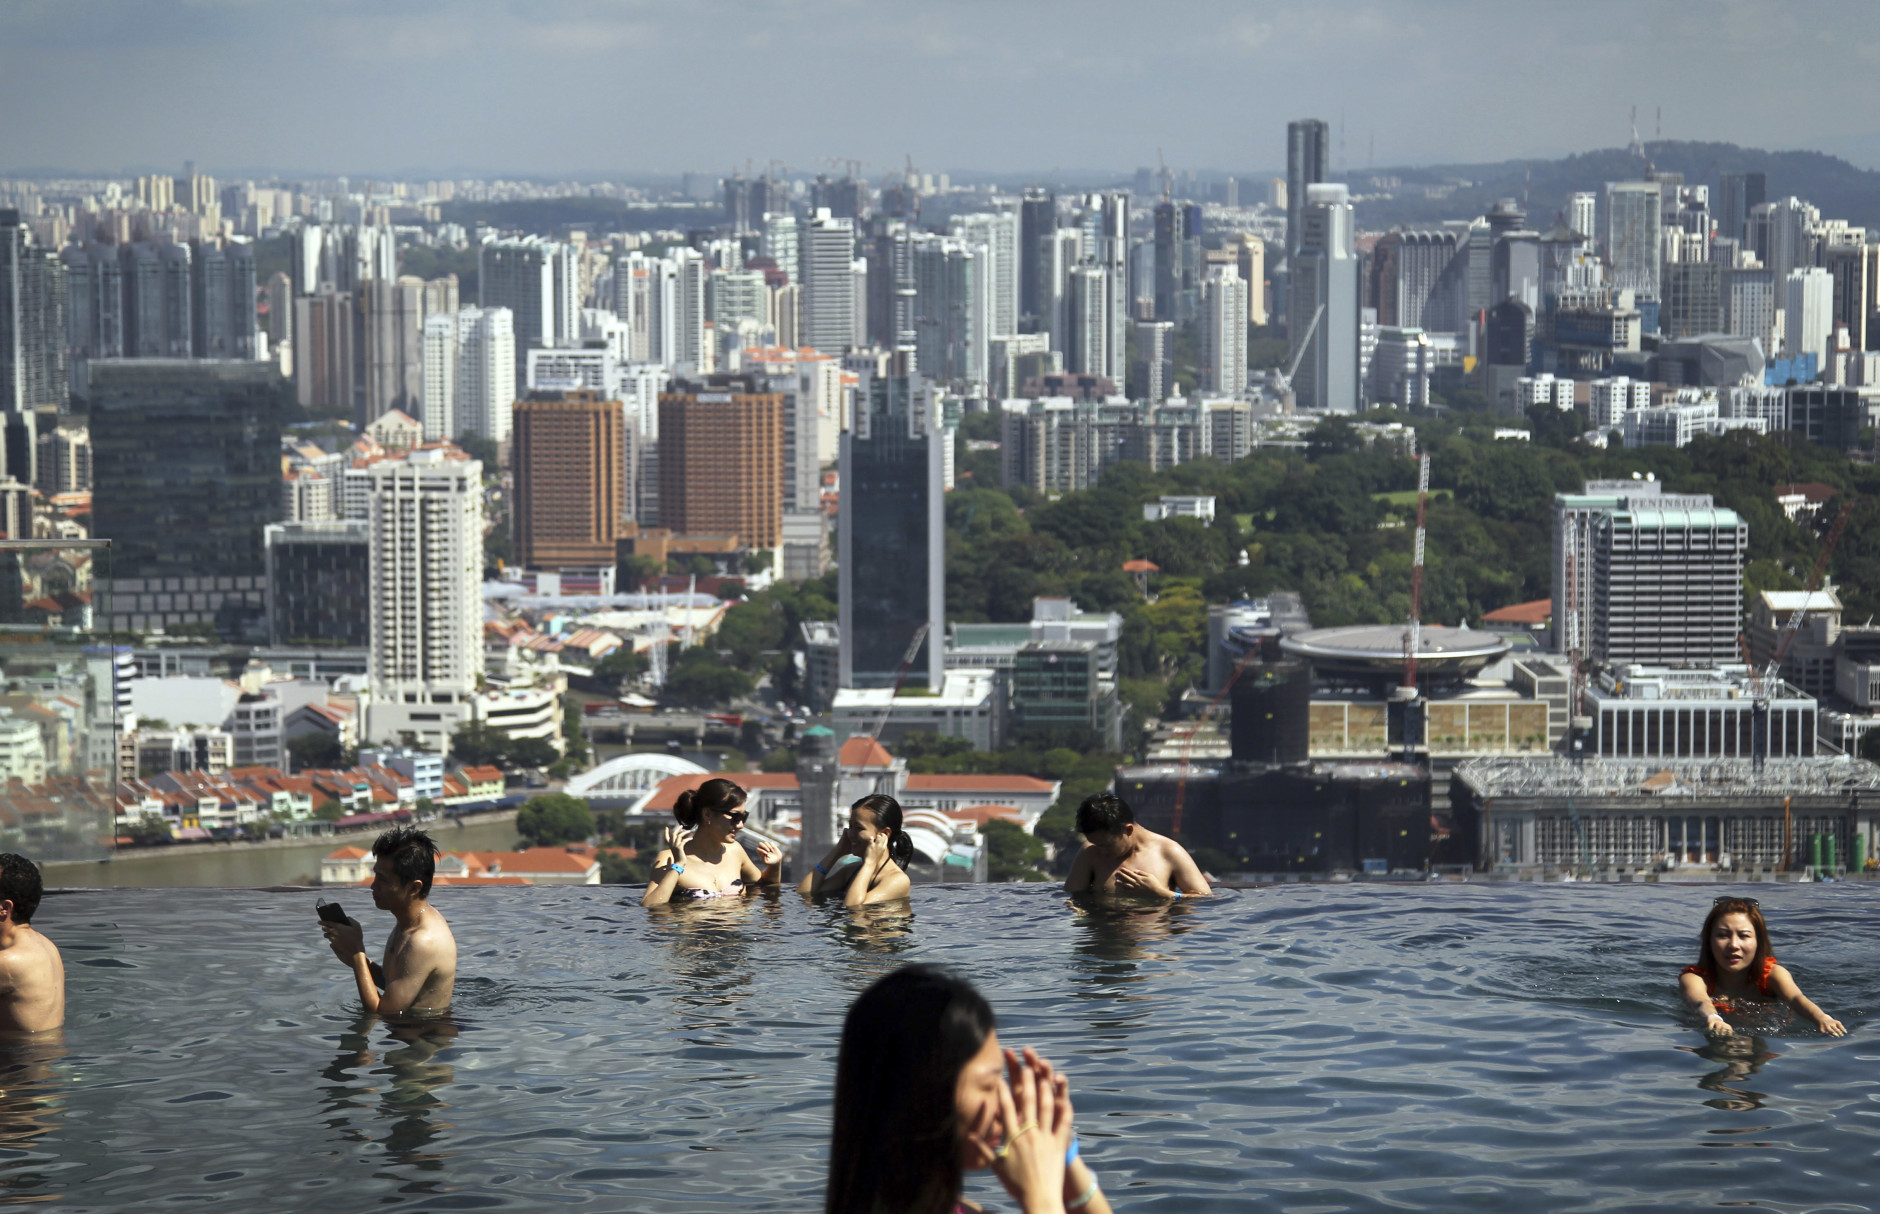 FILE - In this May 13, 2013 file photo, swimmers soak in a swimming pool overlooking the financial skyline in Singapore. Travelers often use Singapore as a quick stopover on long flights but there are plenty of attractions here to justify a visit of several days. (AP Photo/Wong Maye-E, File)